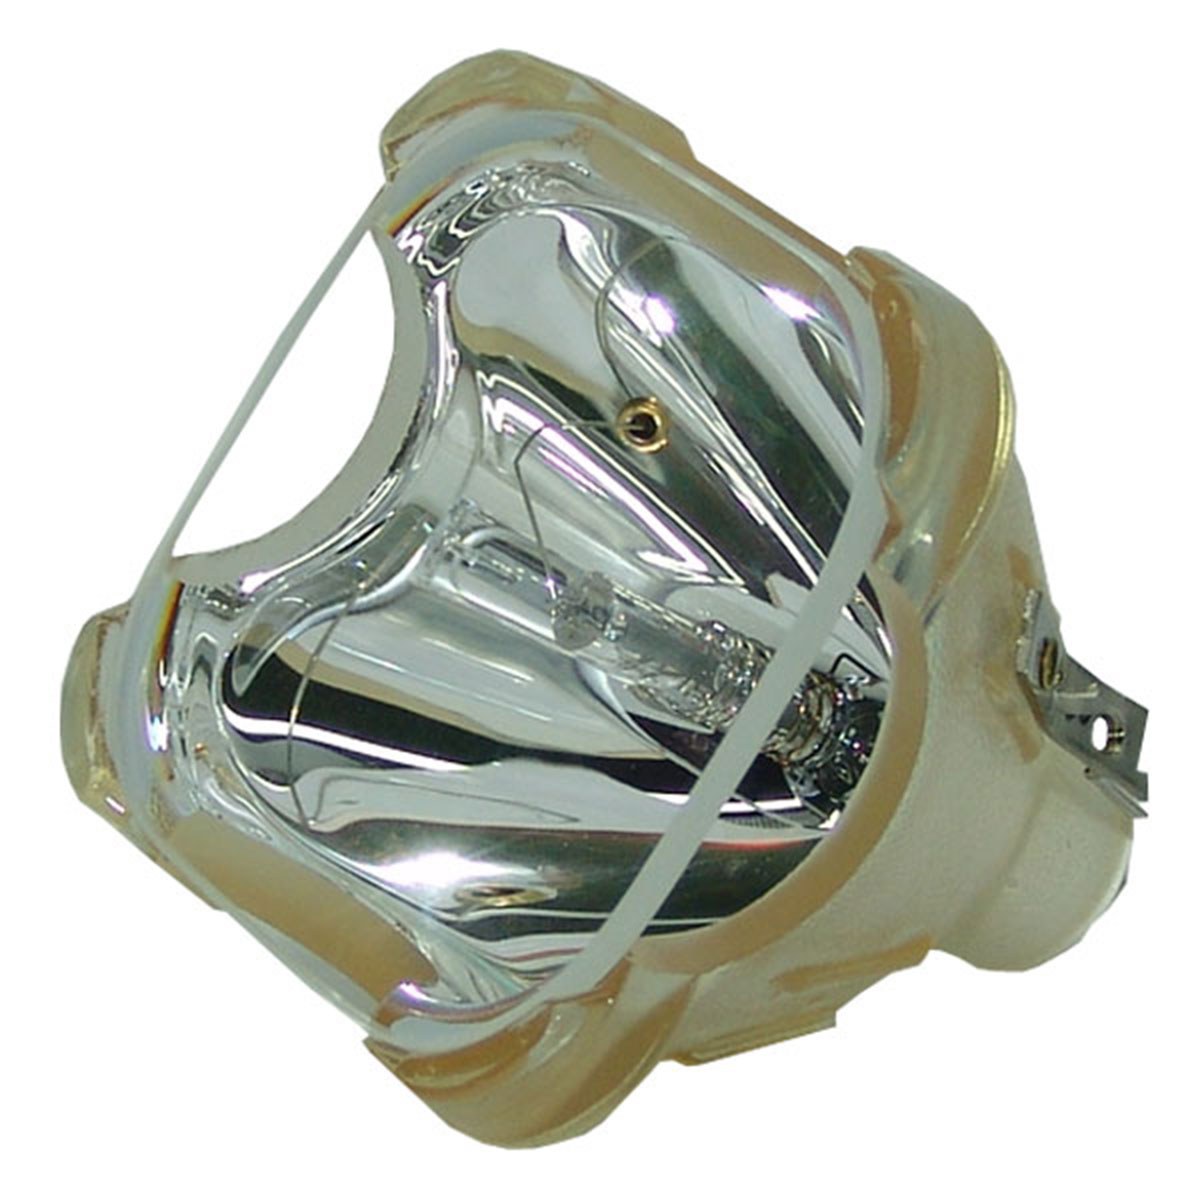 Philips Bare Lamp For Philips 9281 34905390 Projector DLP LCD Bulb